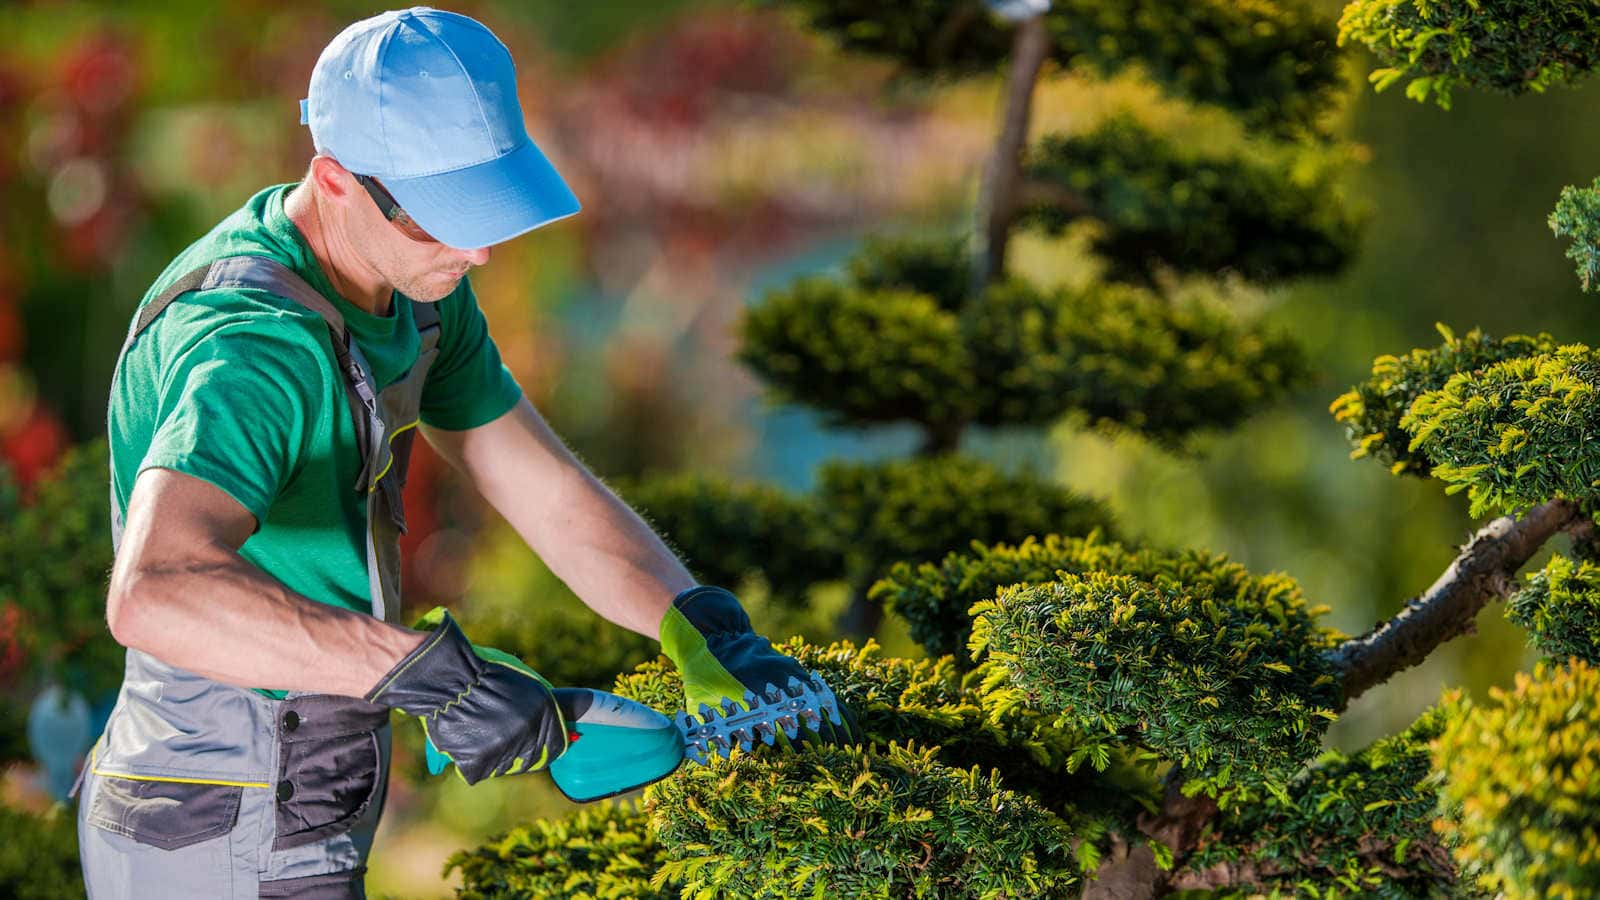 Waterwise Landscaping of Clarkson